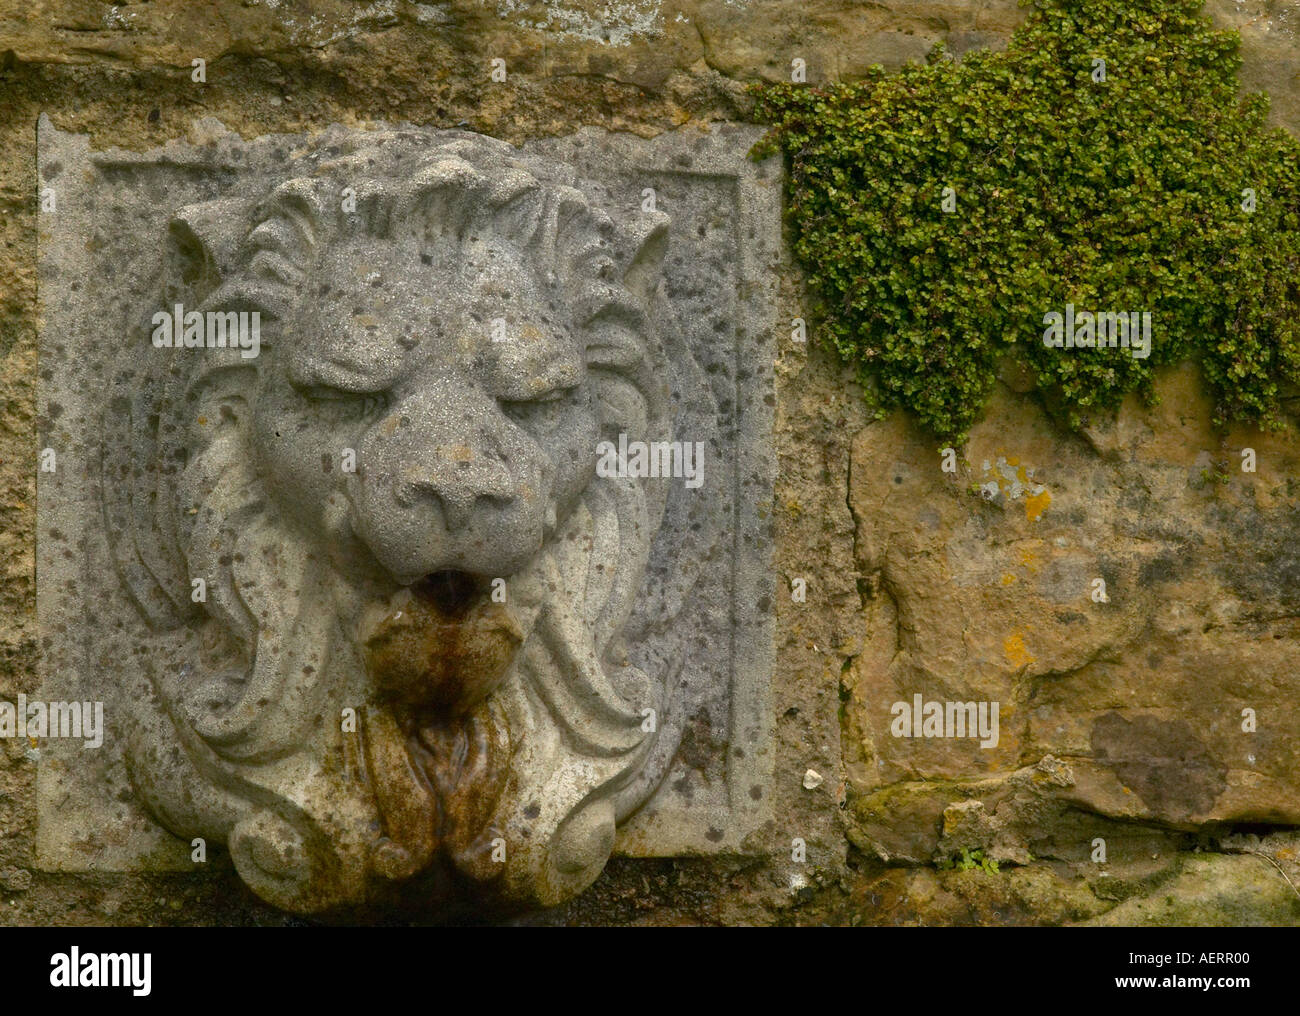 Old Stone Lion Fountain Head Set Into Garden Wall